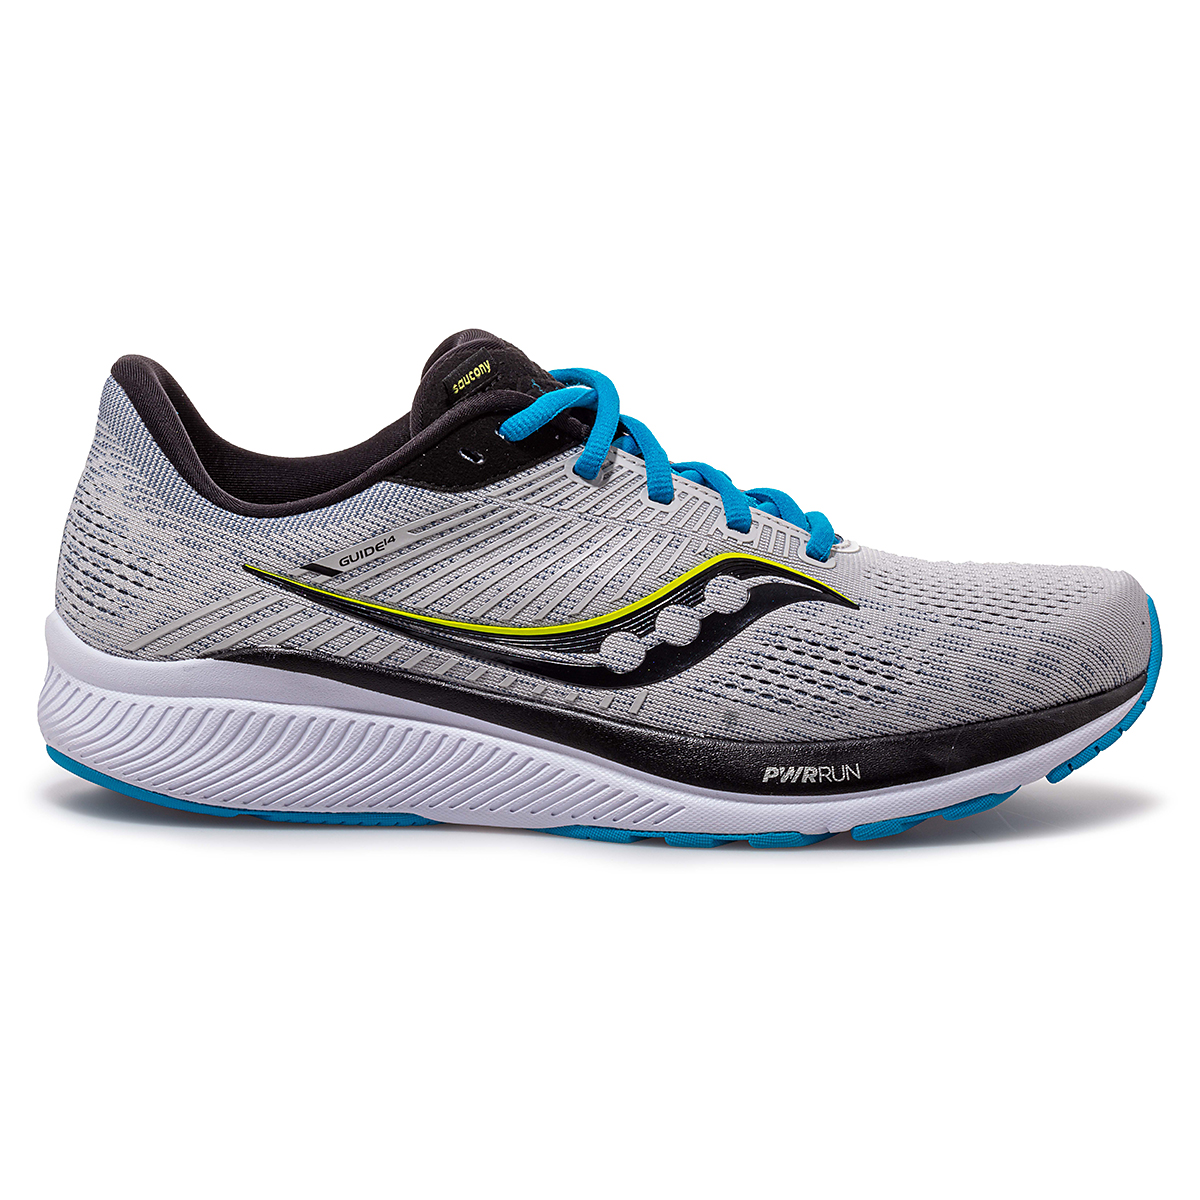 Men's Saucony Guide 14 Running Shoe - Color: Alloy/Cobalt - Size: 7 - Width: Regular, Alloy/Cobalt, large, image 1